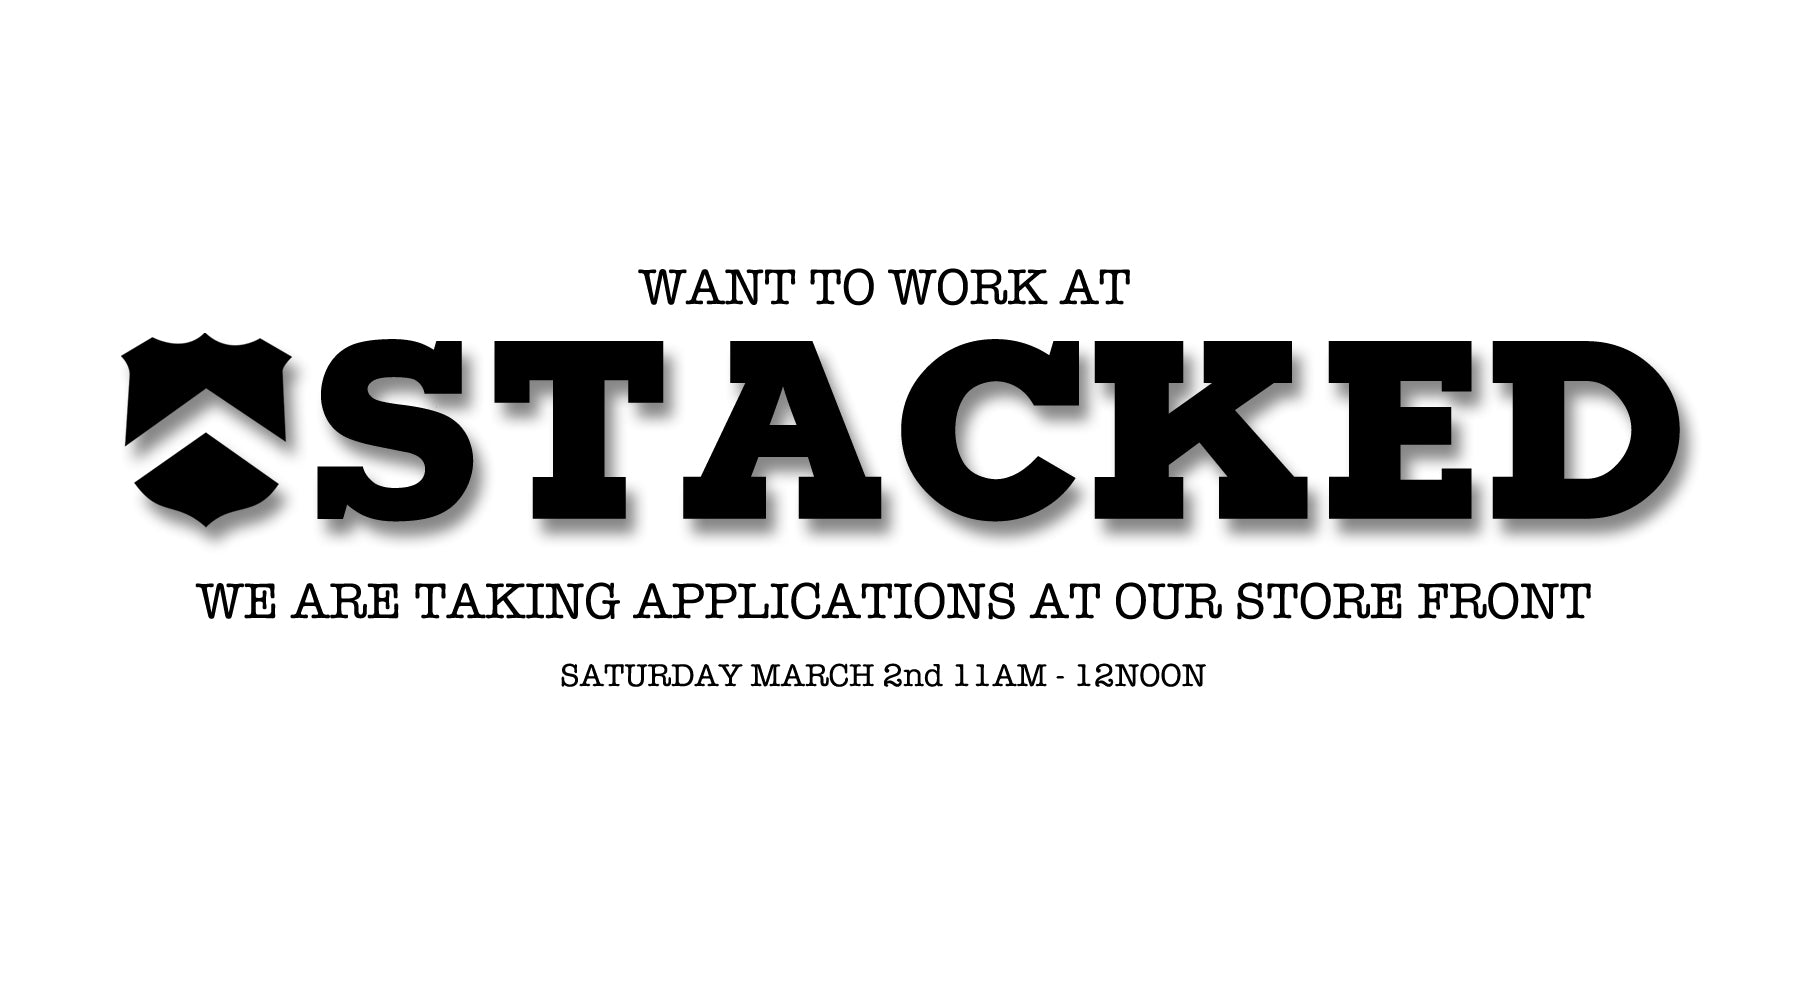 Want to work at Stacked BMX shop's store front